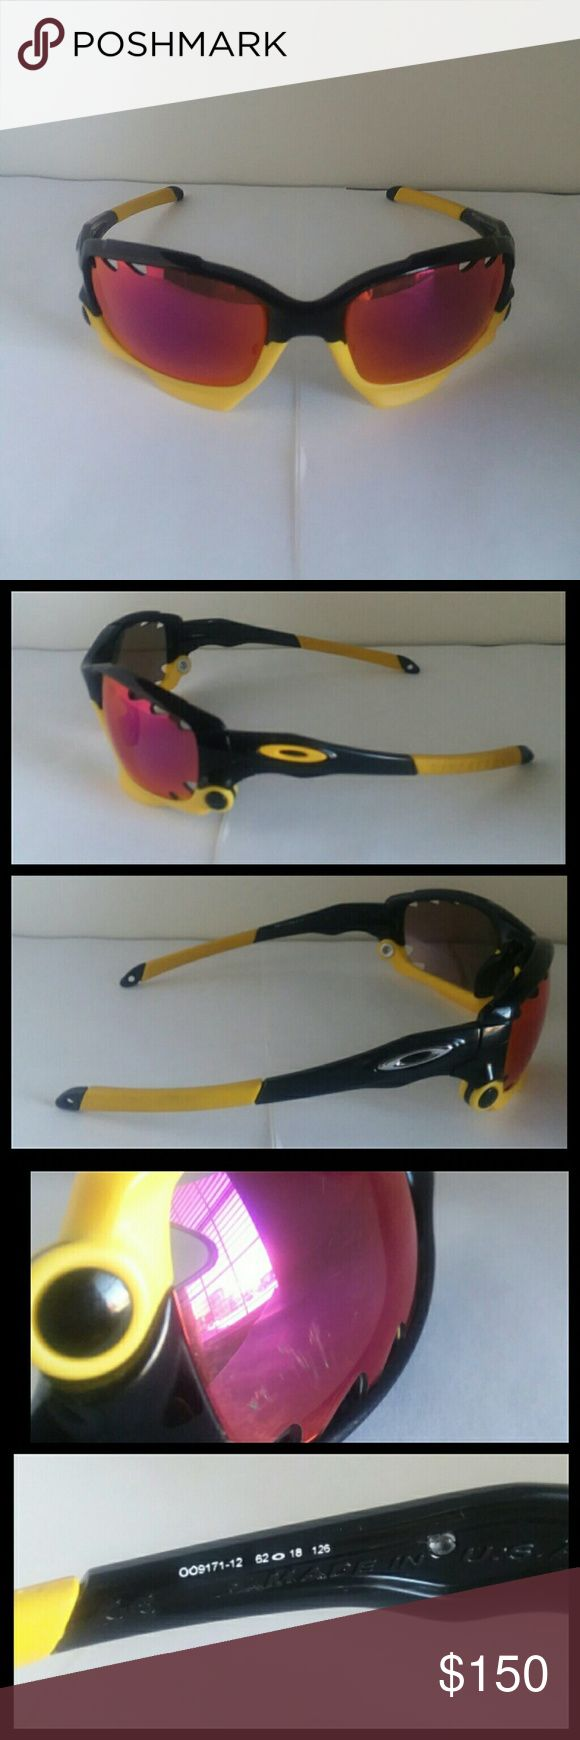 Good condition Oakley Racing Jacket sunglasses Oakley Racing Jacket sunglasses and frame Good worn condition, have them for over 5 years, authentic, worn many times, lens changing mechanisms work perfectly Oakley Racing Jacket Livestrong OO9171-12  Original lenses were yellow and black (only one of each left) No original case Color: Black / Yellow Size: 62-18-126 Oakley Racing Jacket OO9171-10  Red lenses. Left lens scratched. No original case  Color: Black / with red details  Size…